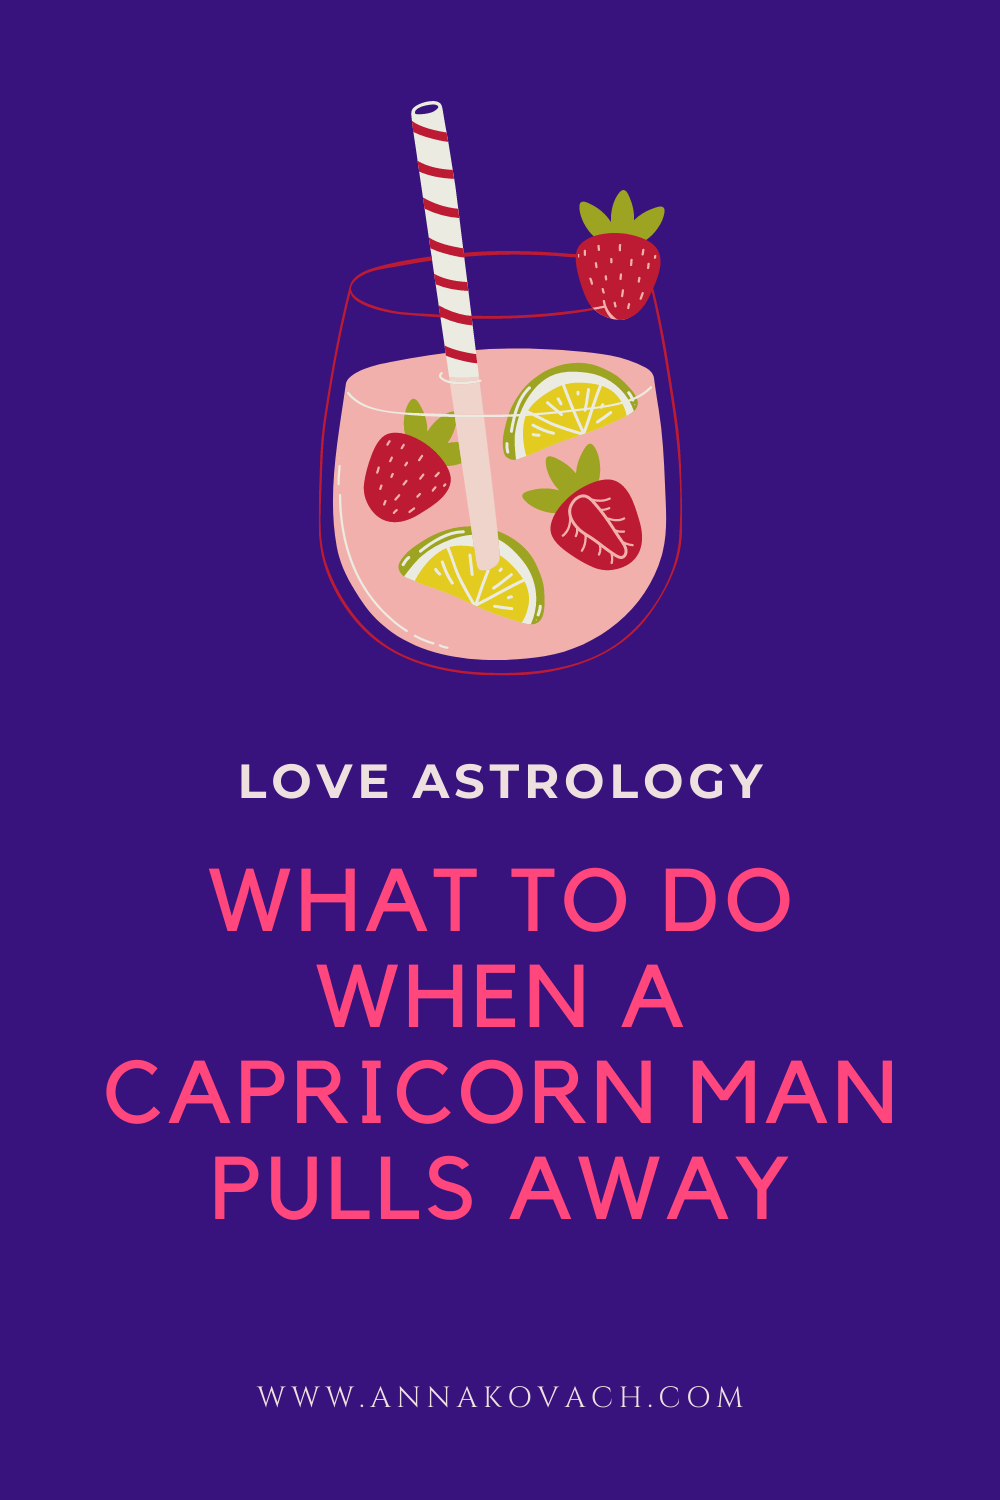 Pulls away why capricorn man 15 Unmistakable